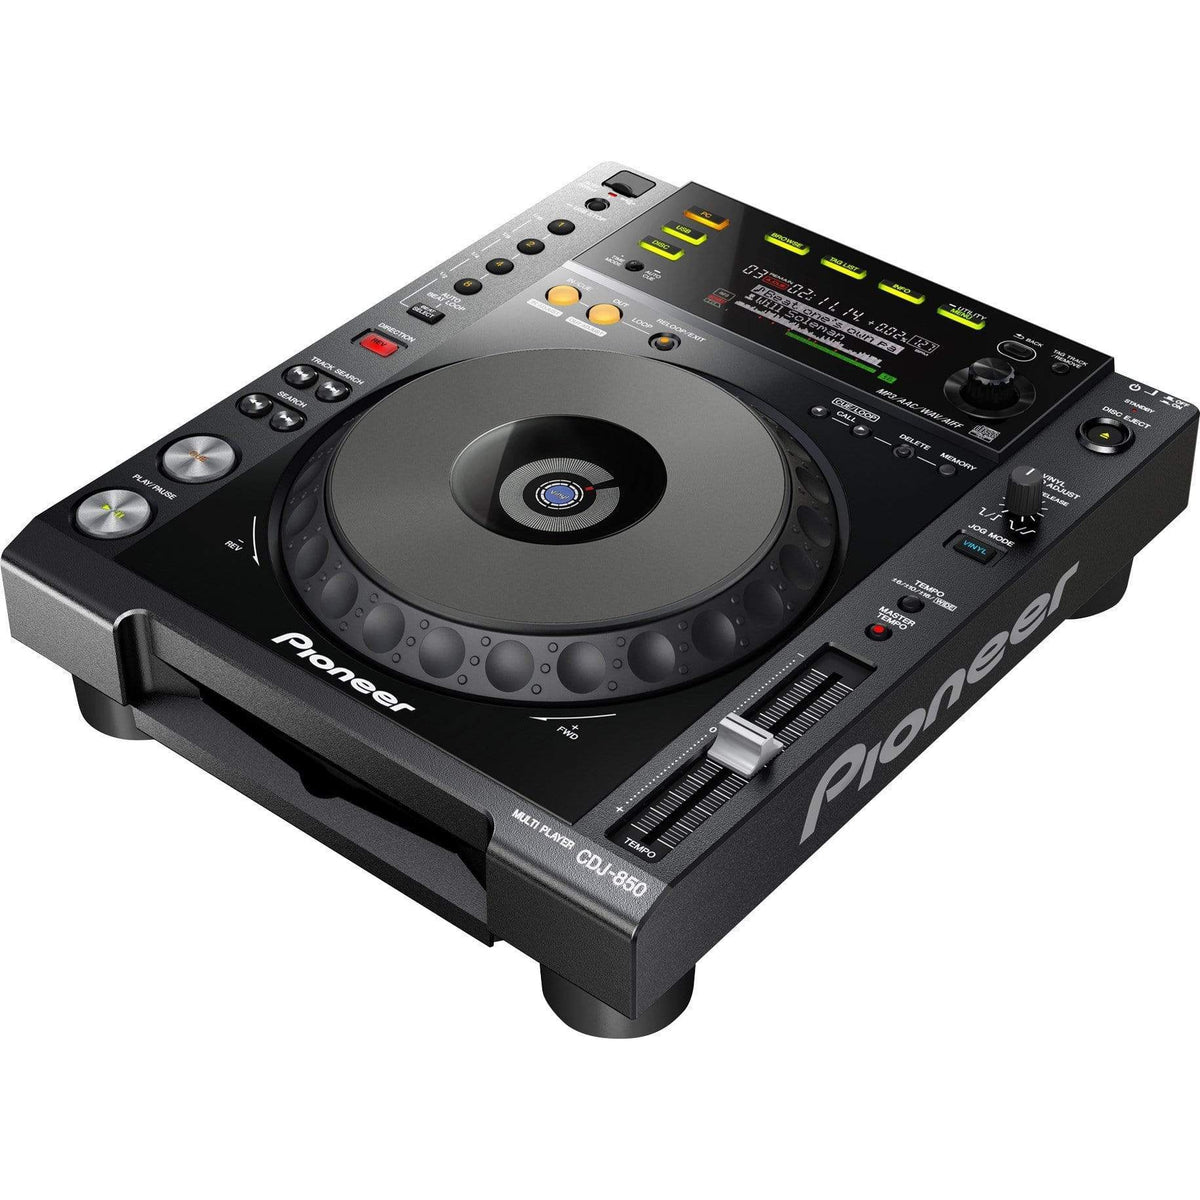 Pioneer DJ CDJ-850 Digital Deck w/ Full Scratch Jog Wheel & rekordbox Support